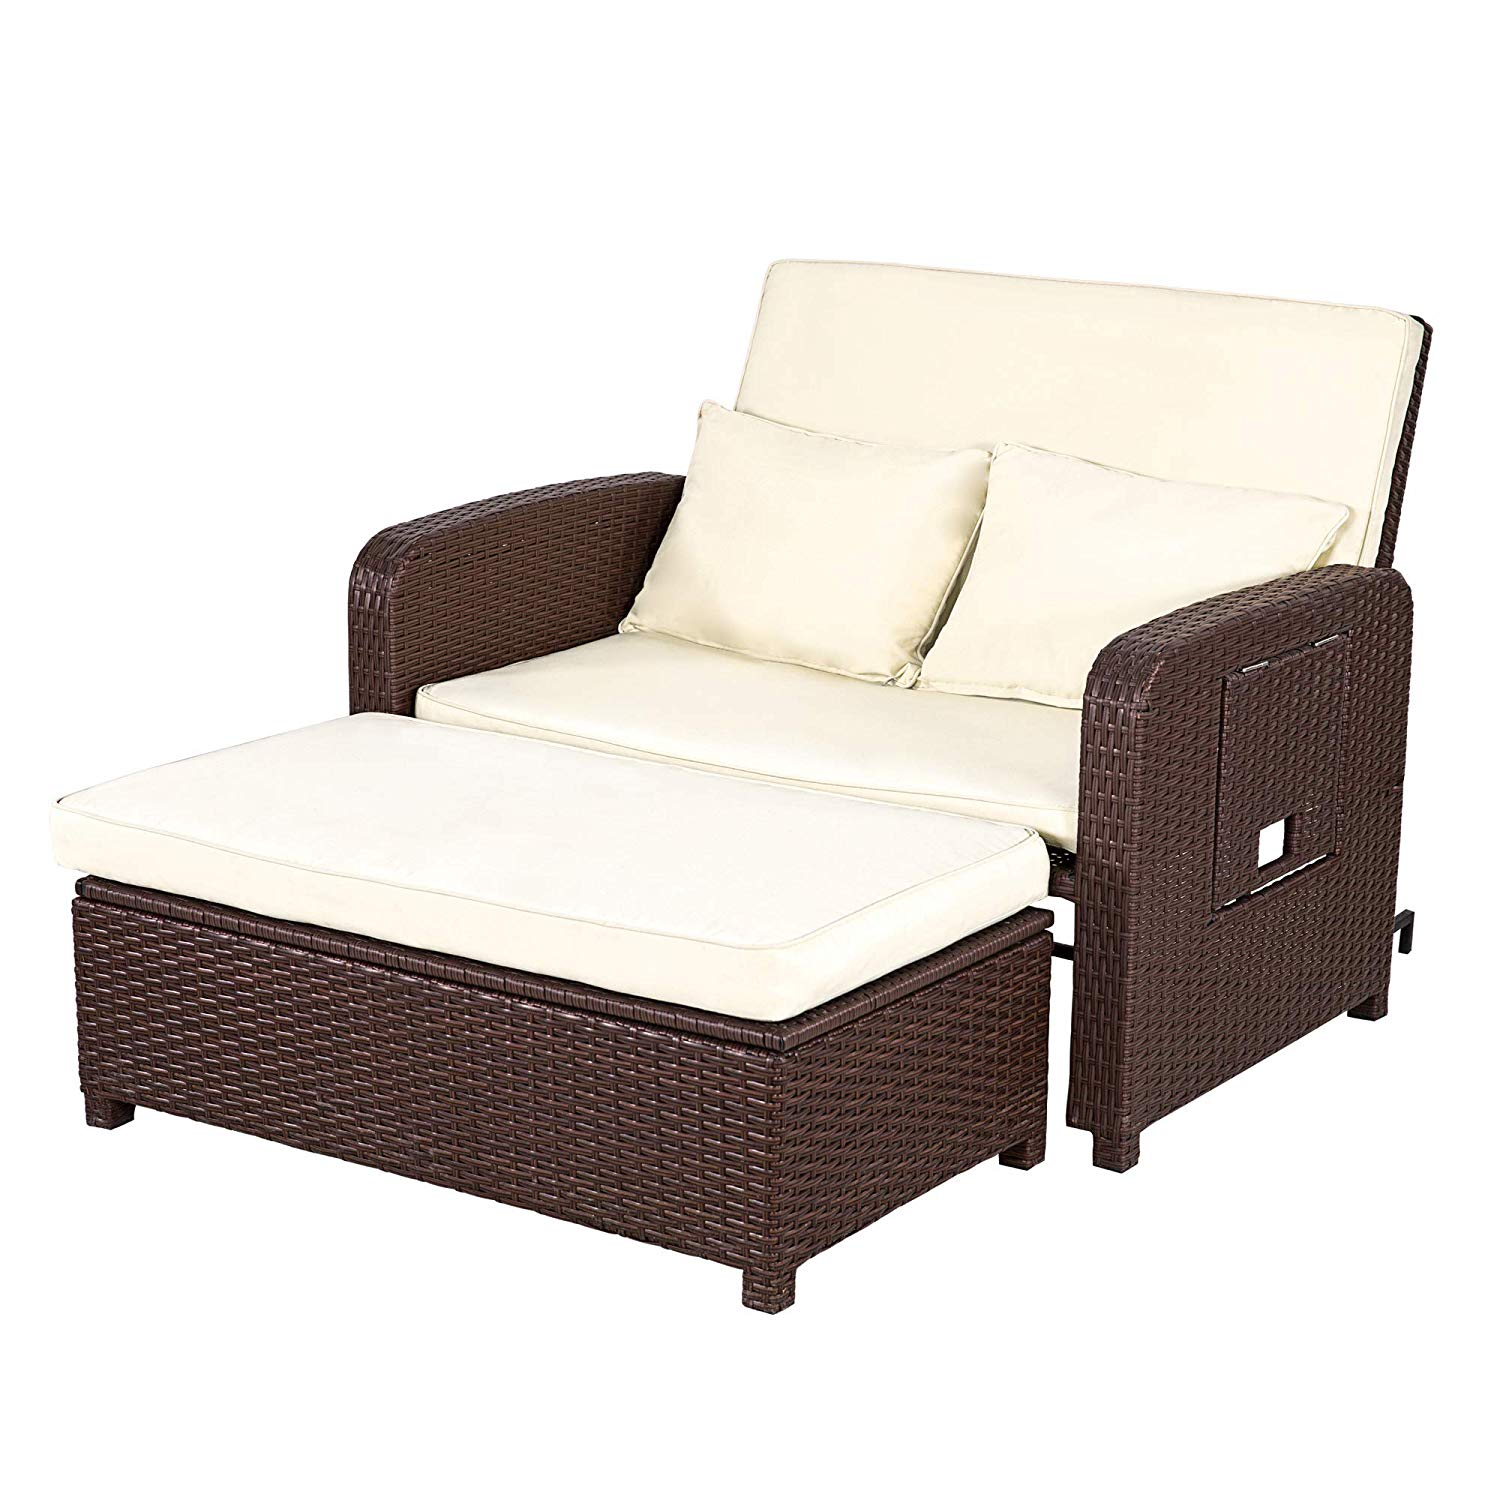 FurniTure Outdoor Wicker Love Seat Daybed 2 Piece Patio Rattan Sectional Sofa Set Bed Wicker Rattan Set, Cocoa Brown Wicker White Cushions